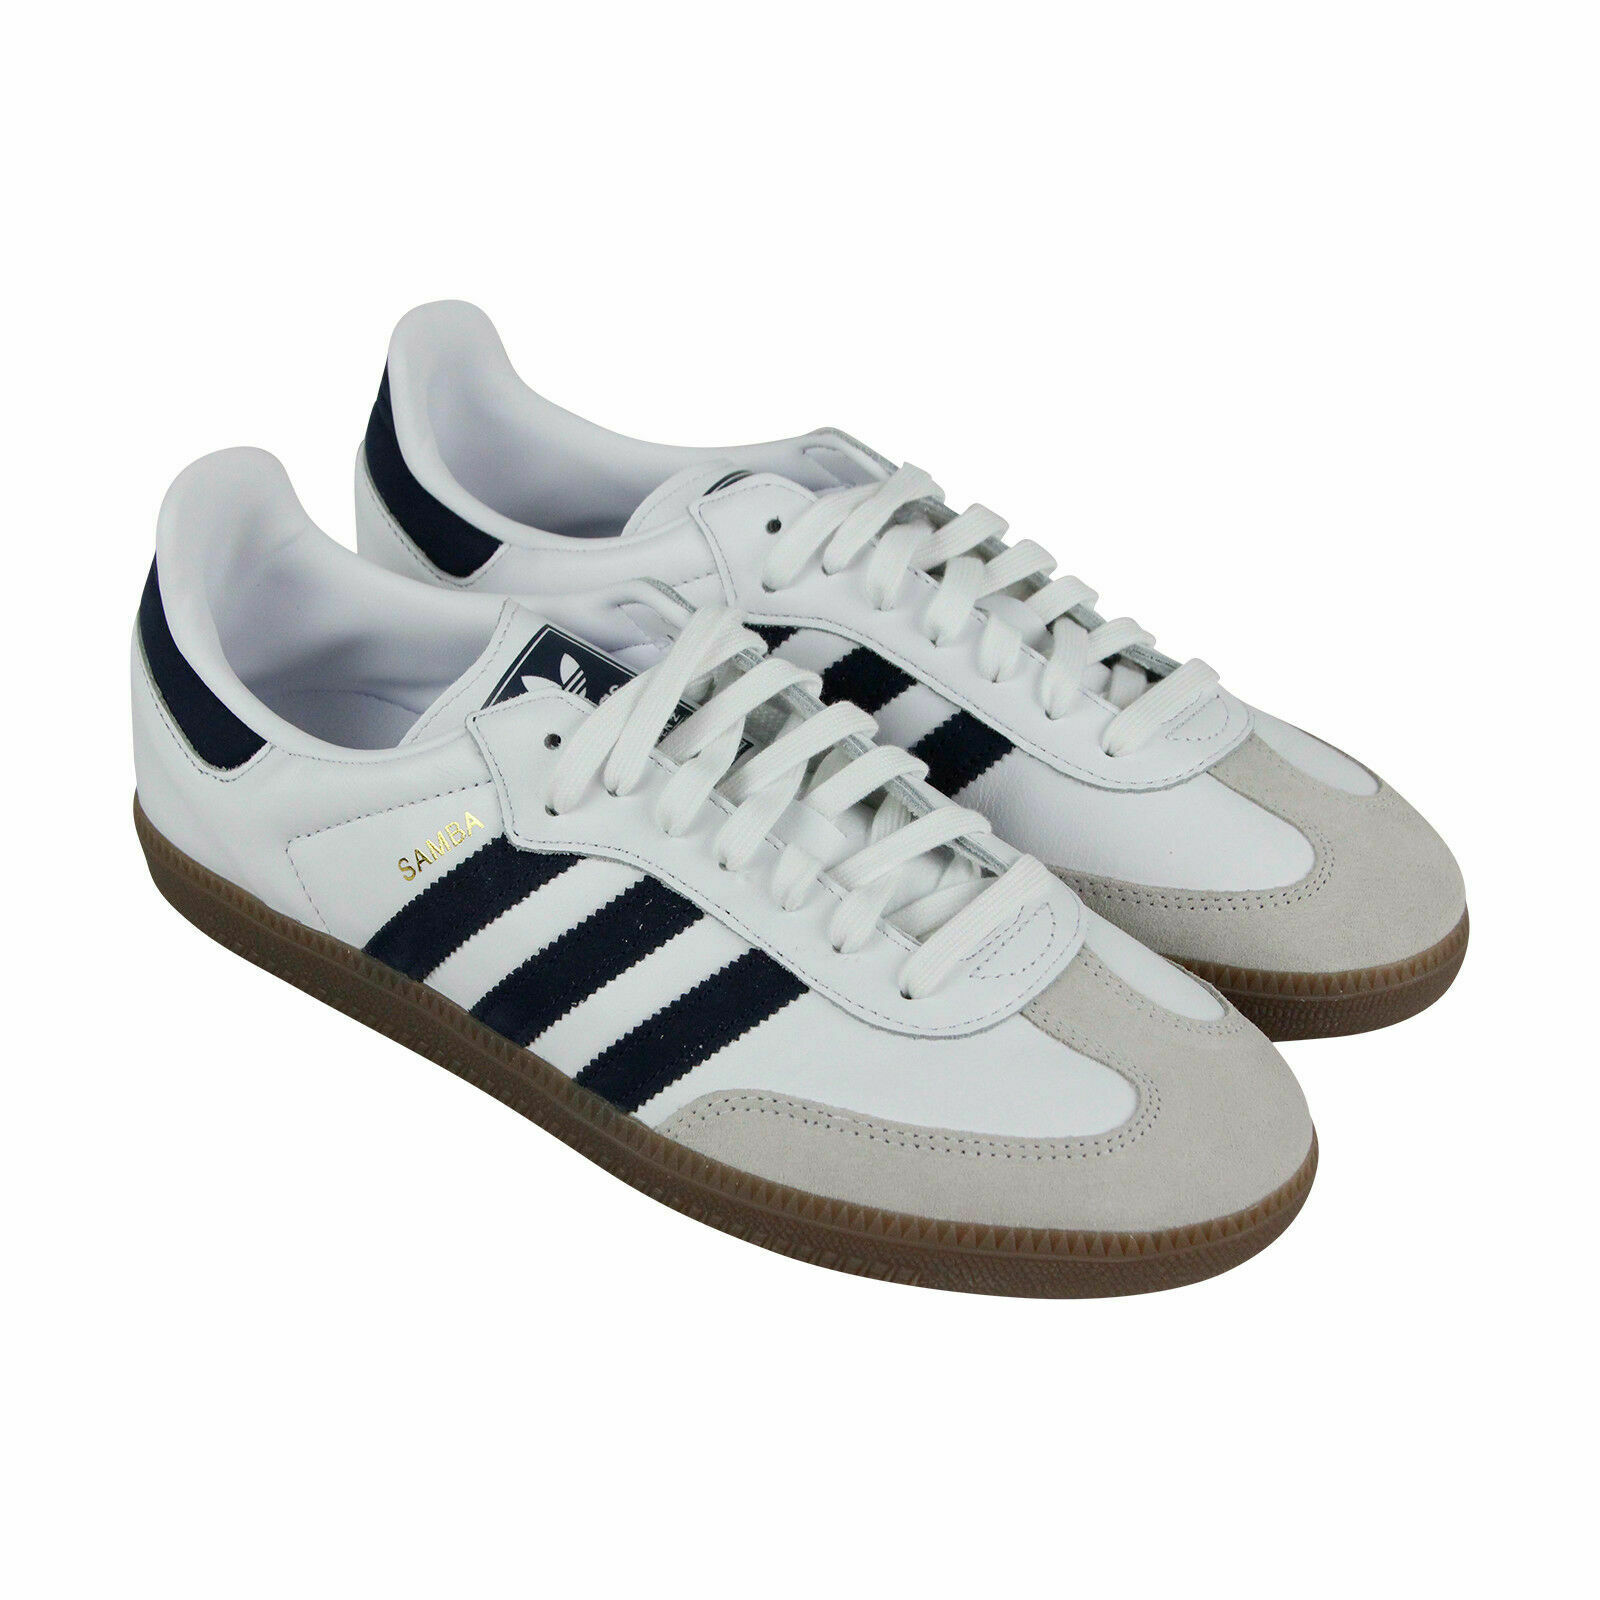 Adidas Samba OG Mens White Leather Lace Up Sneakers shoes